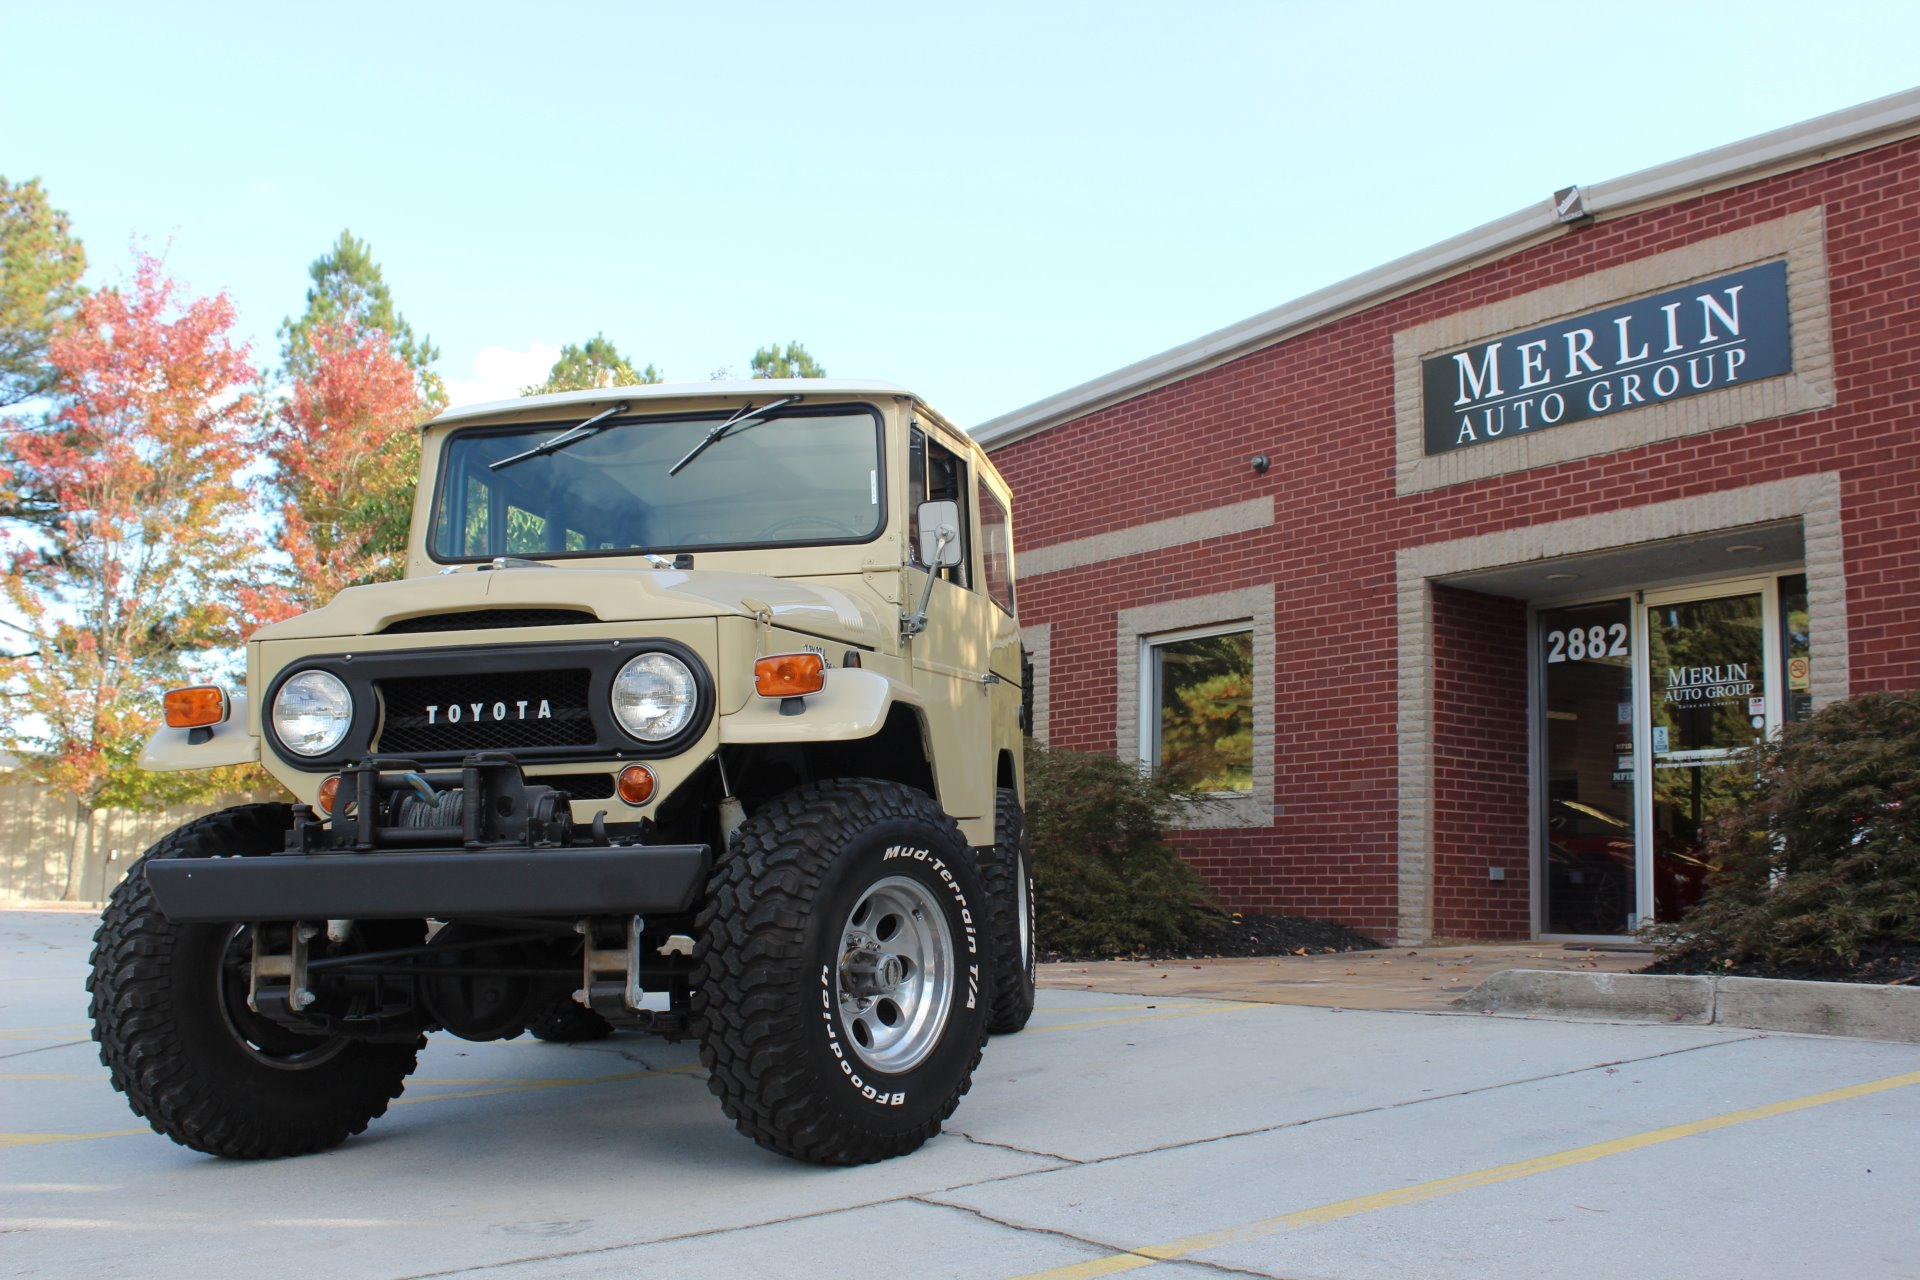 Used 1969 Toyota Fj40 Stock P3154 Ultra Luxury Car From Merlin 1973 Land Cruiser Original Auto Group